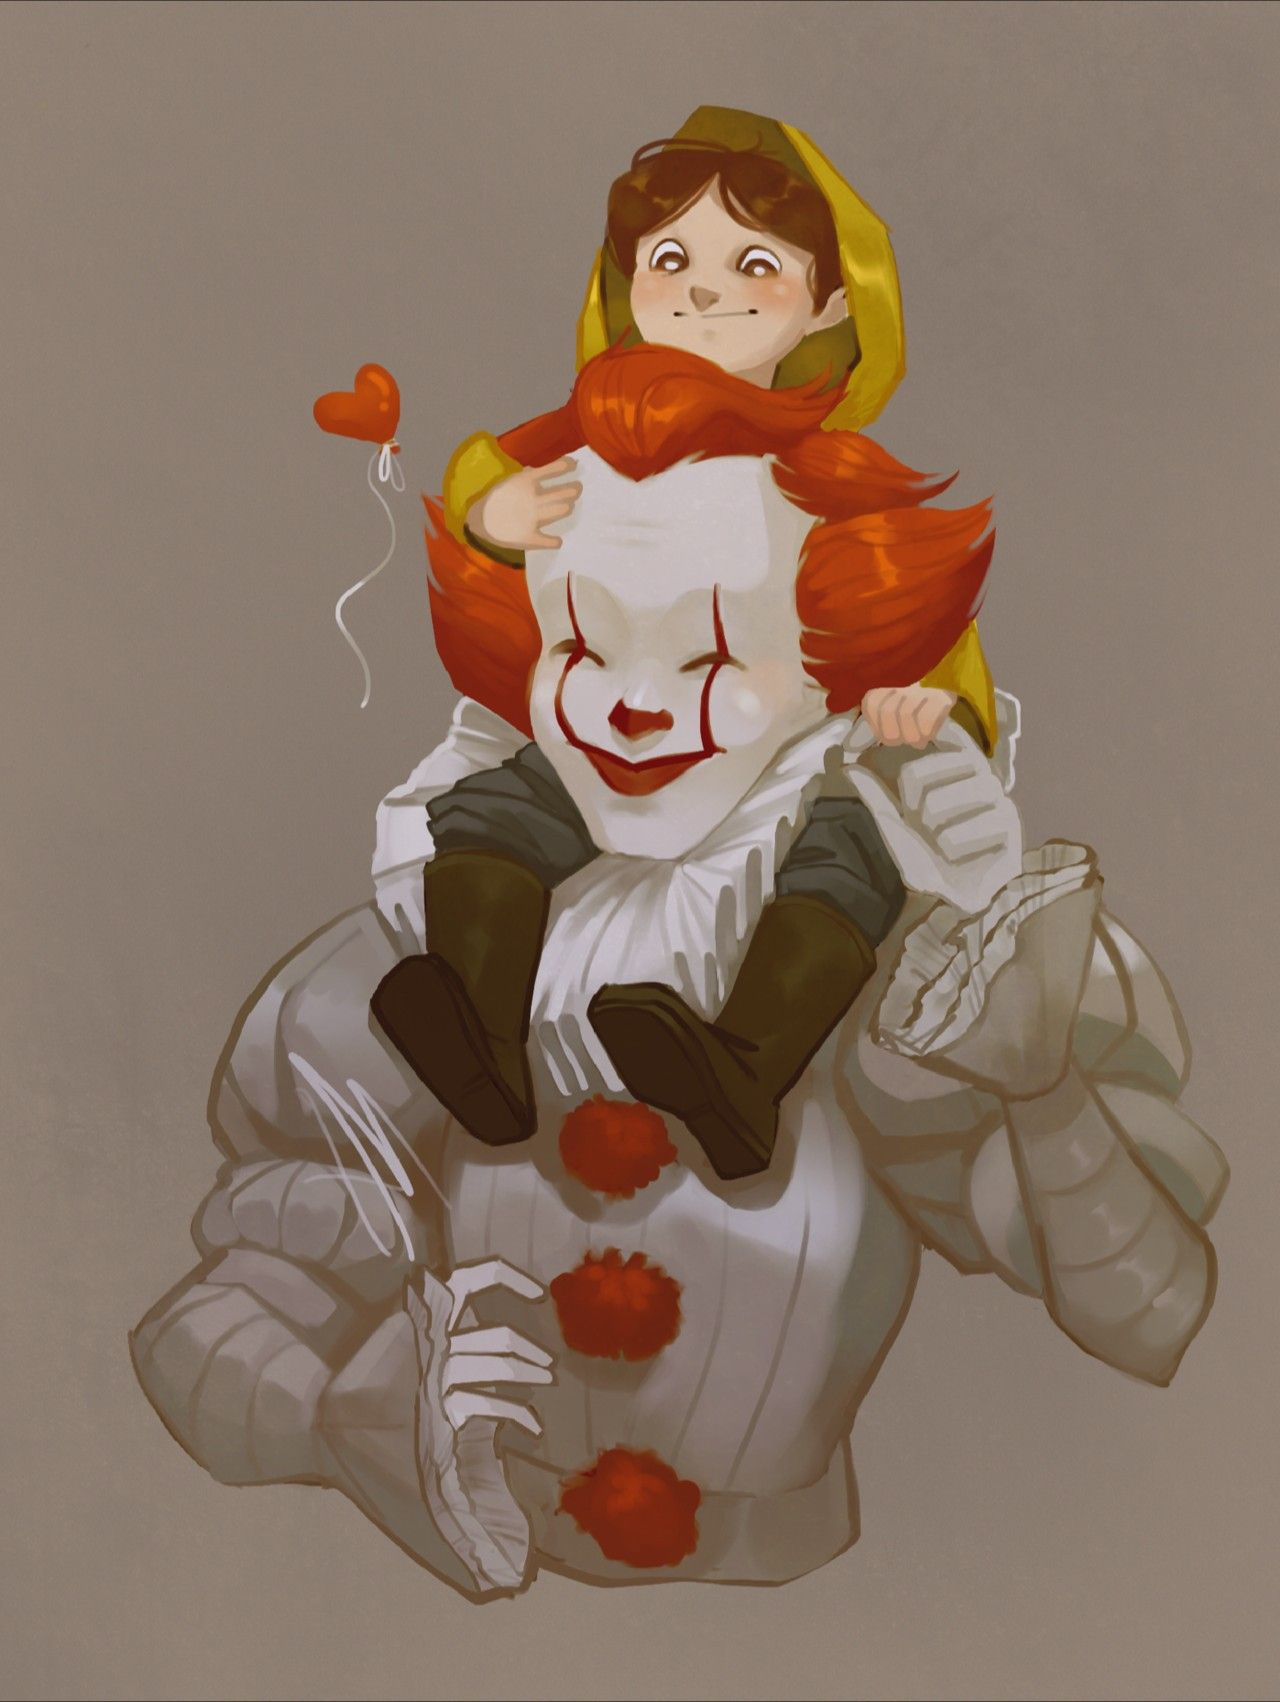 Pin By Chloee On Turned Good Au Pennywise And Georgie With Images